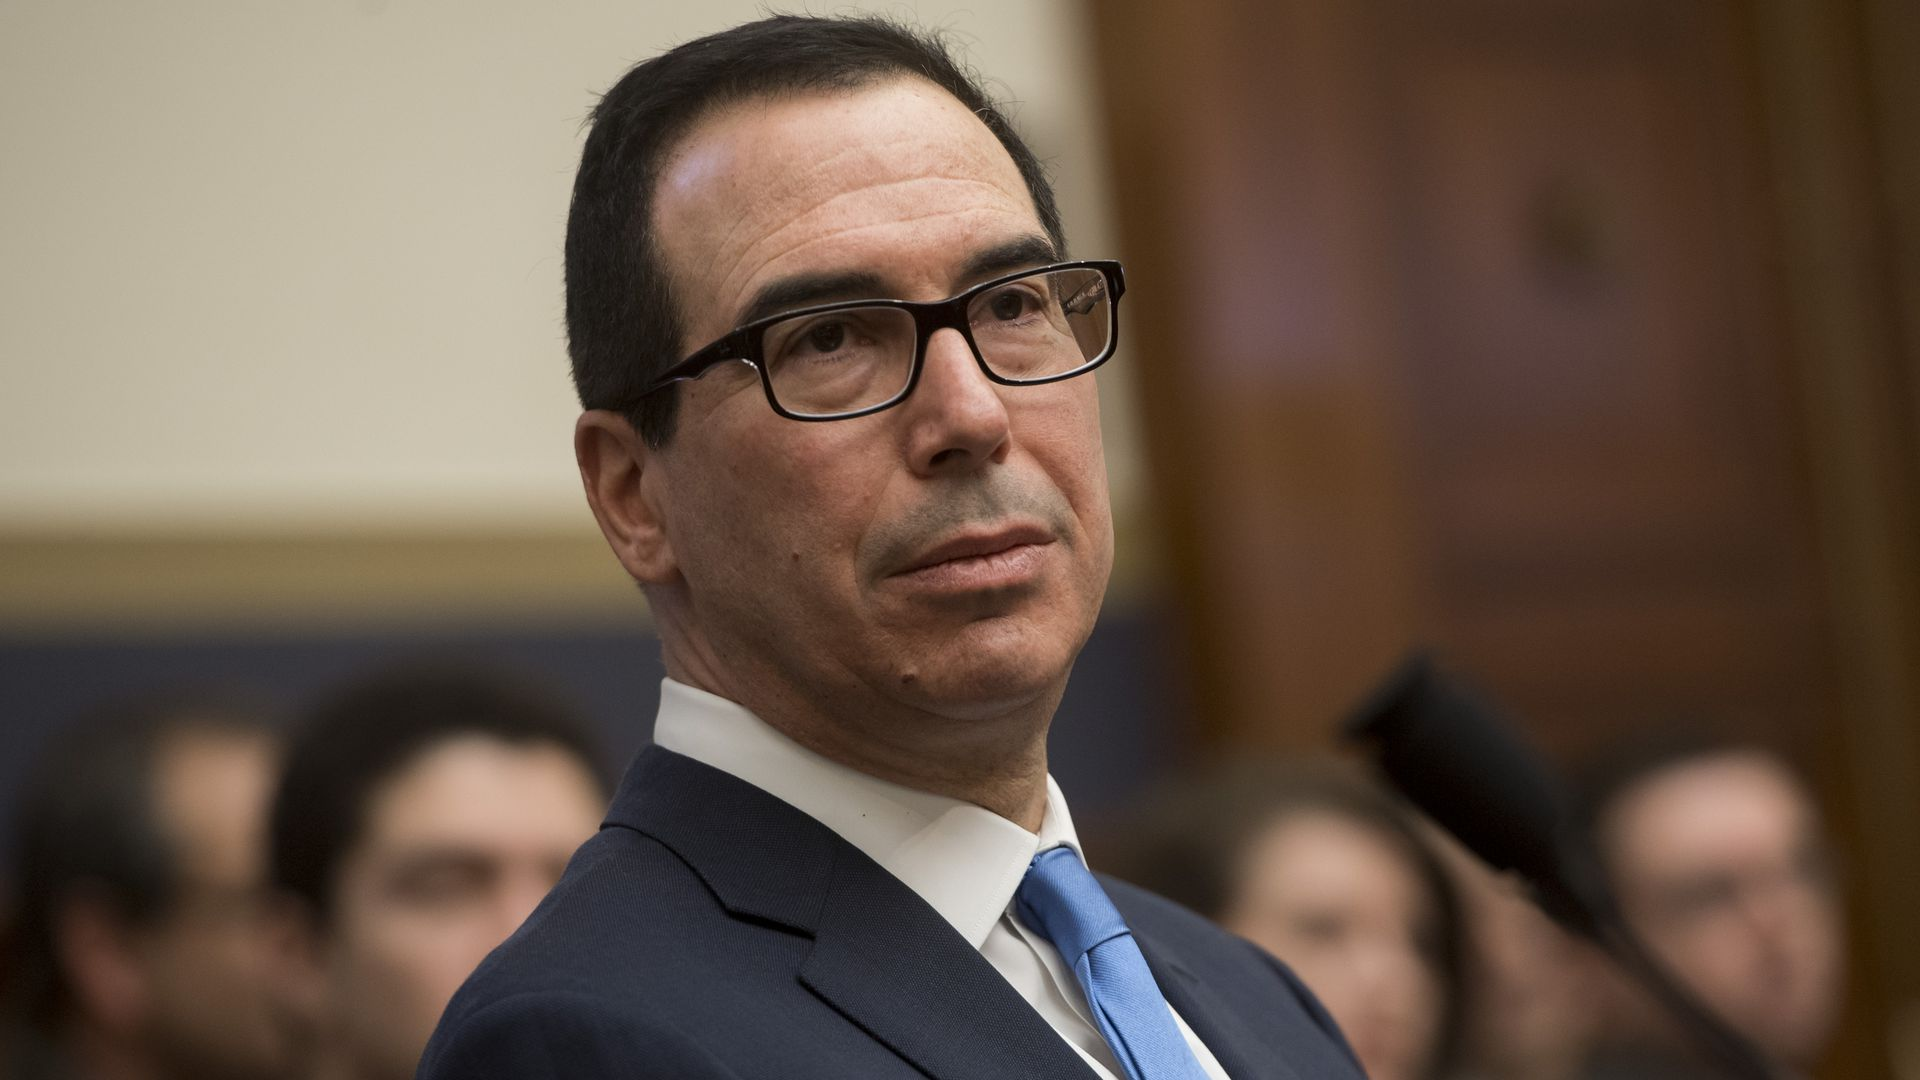 Treasury Secretary Steven Mnuchin, who wants the Justice Department to take a tougher look at major technology companies.